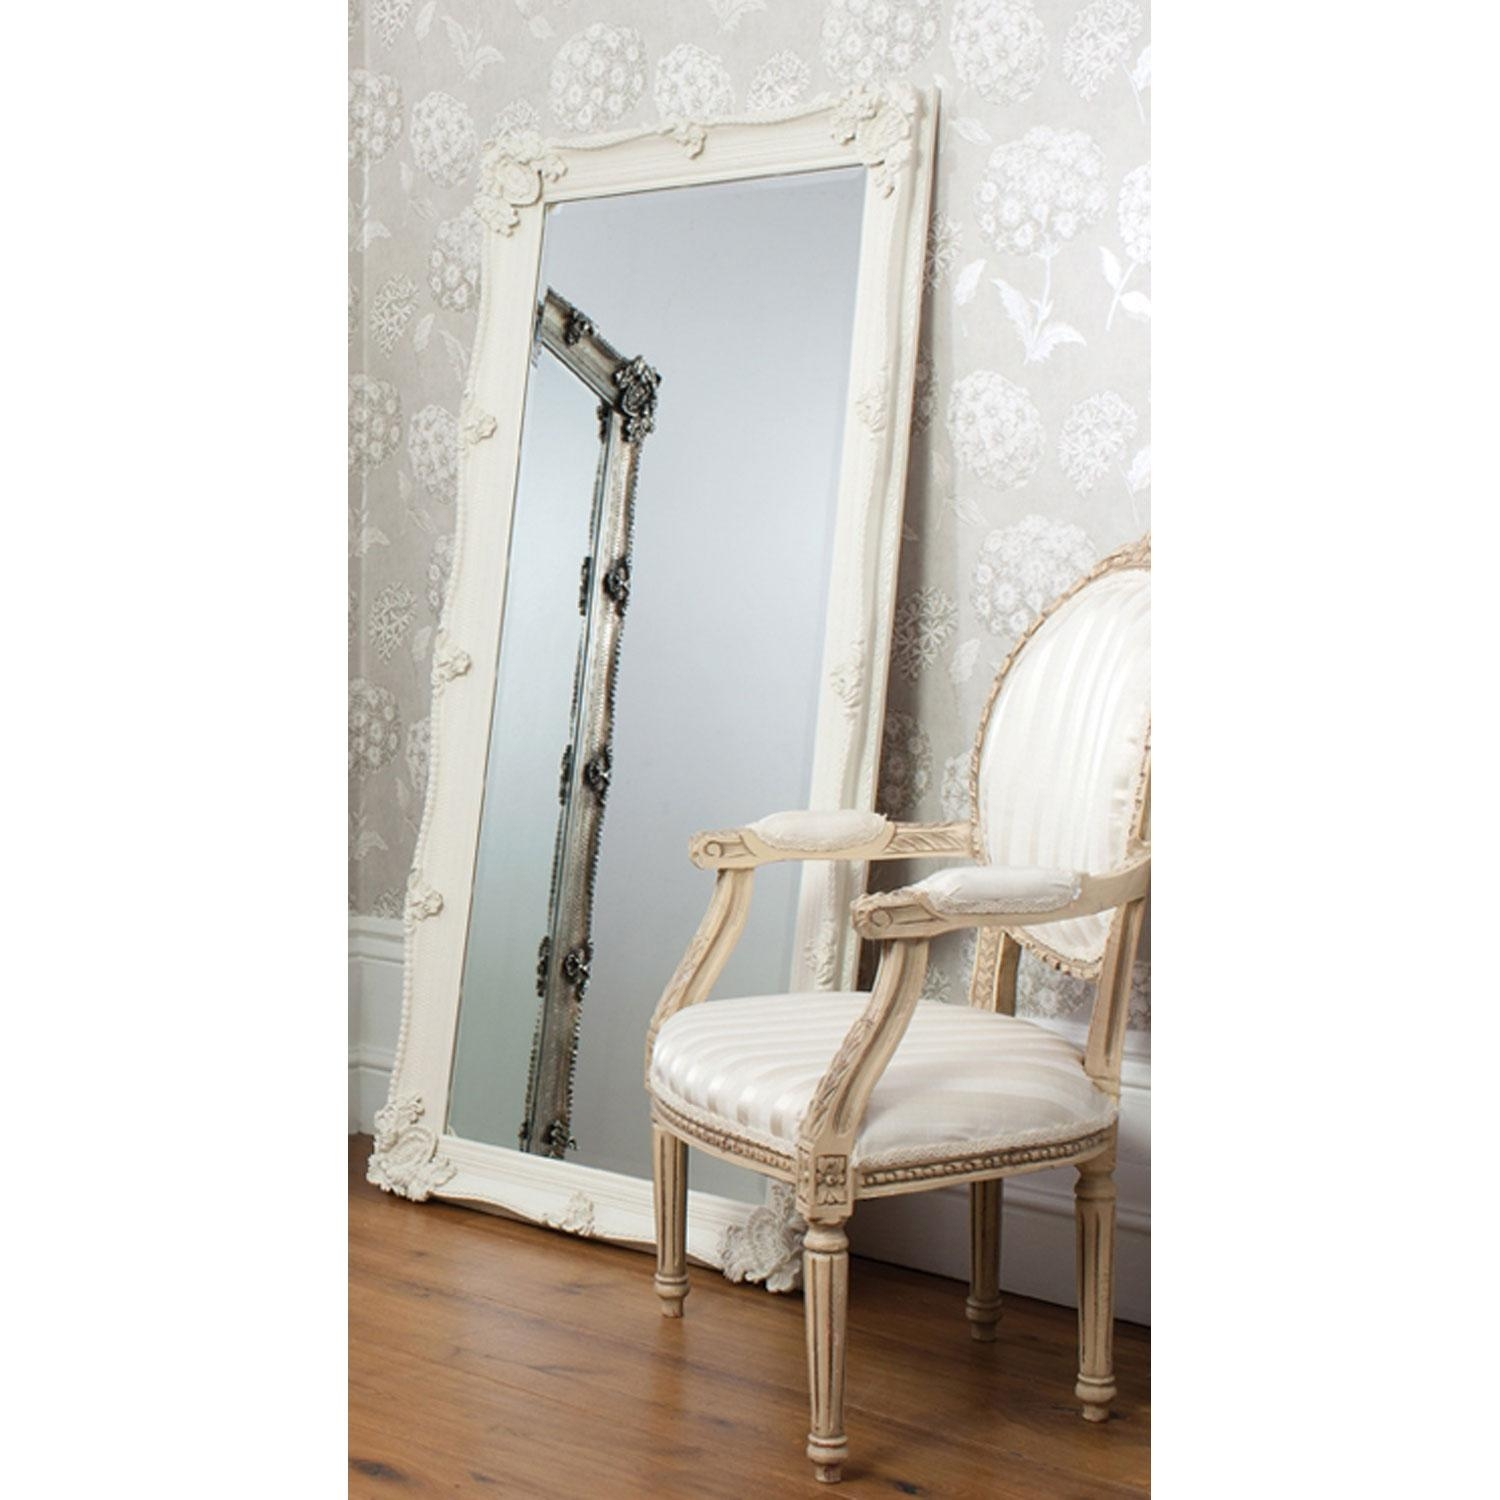 Bedroom: Sergio Leaner Mirror In Antique Gold Finish M3105Bec For With Regard To Baroque Floor Mirror (Image 7 of 20)